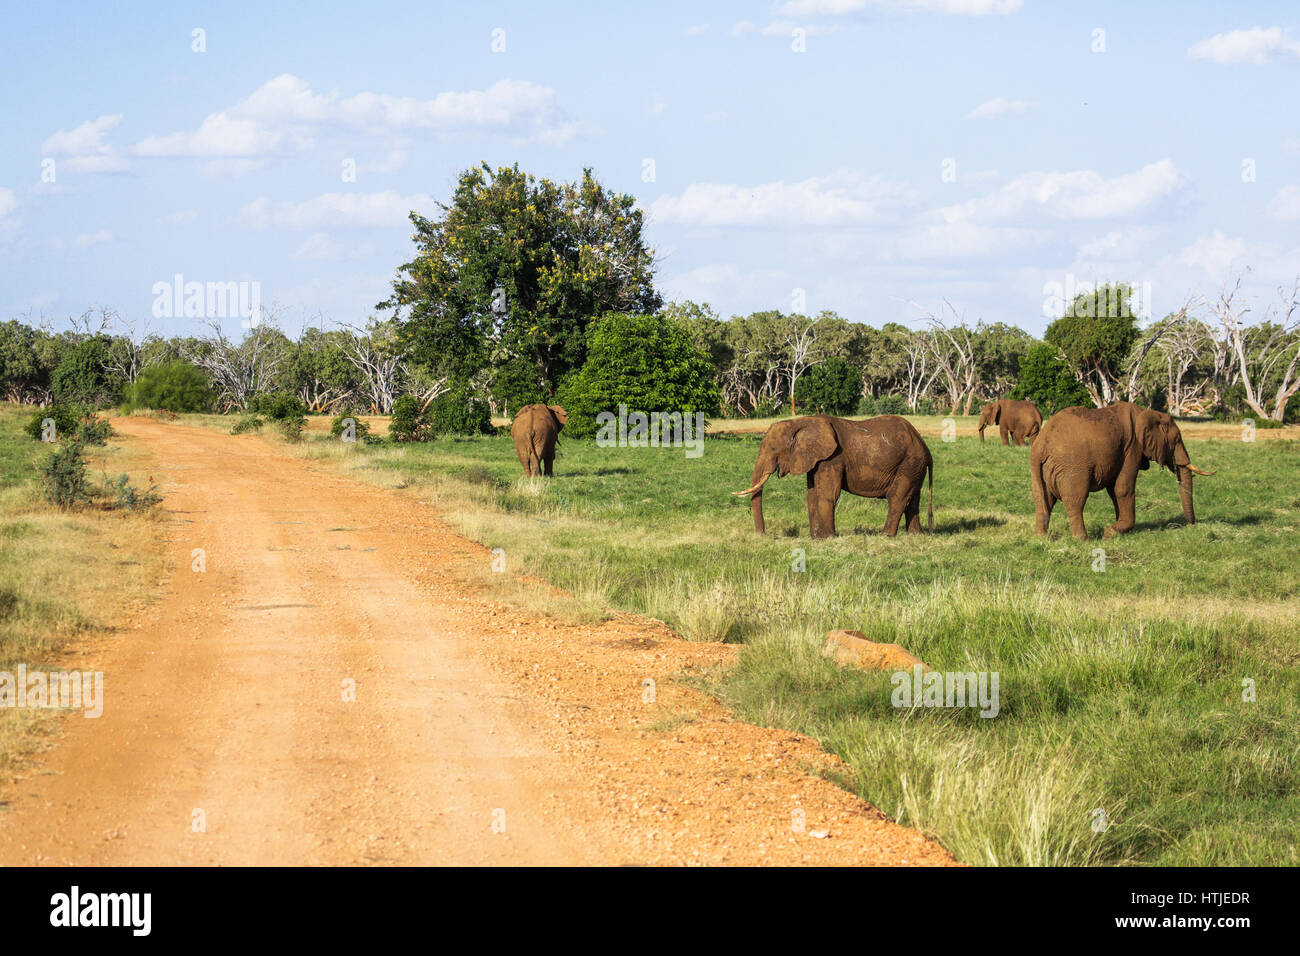 Elephants in Tsavo East National Park. Kenya. - Stock Image